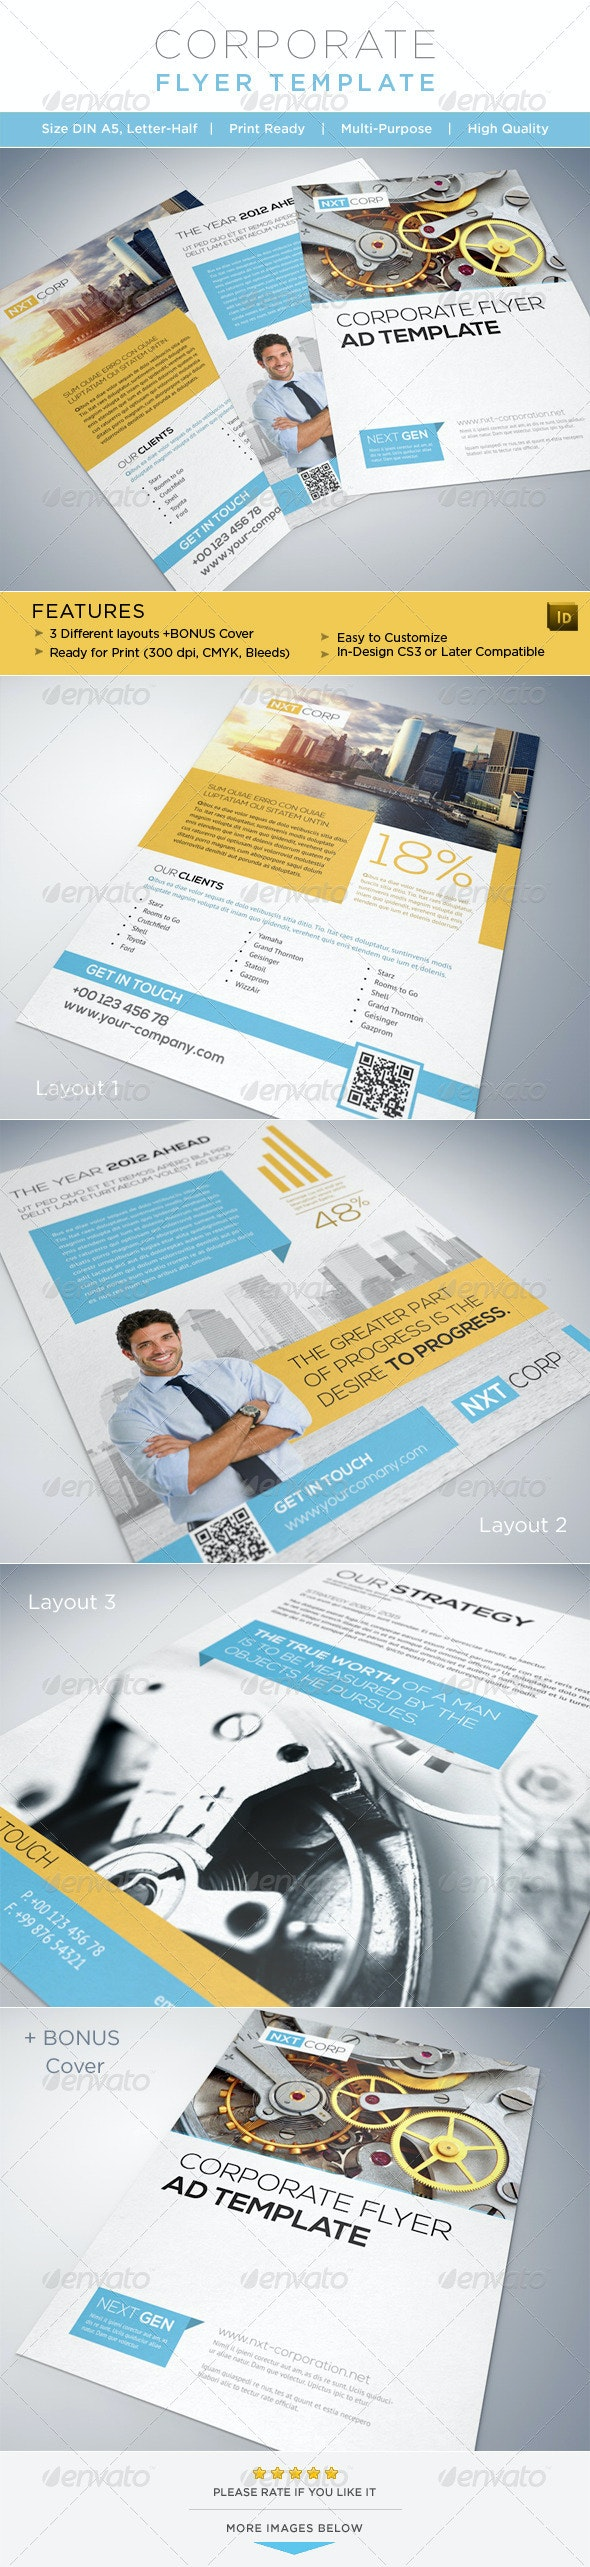 Corporate Flyer / AD Template - Corporate Flyers